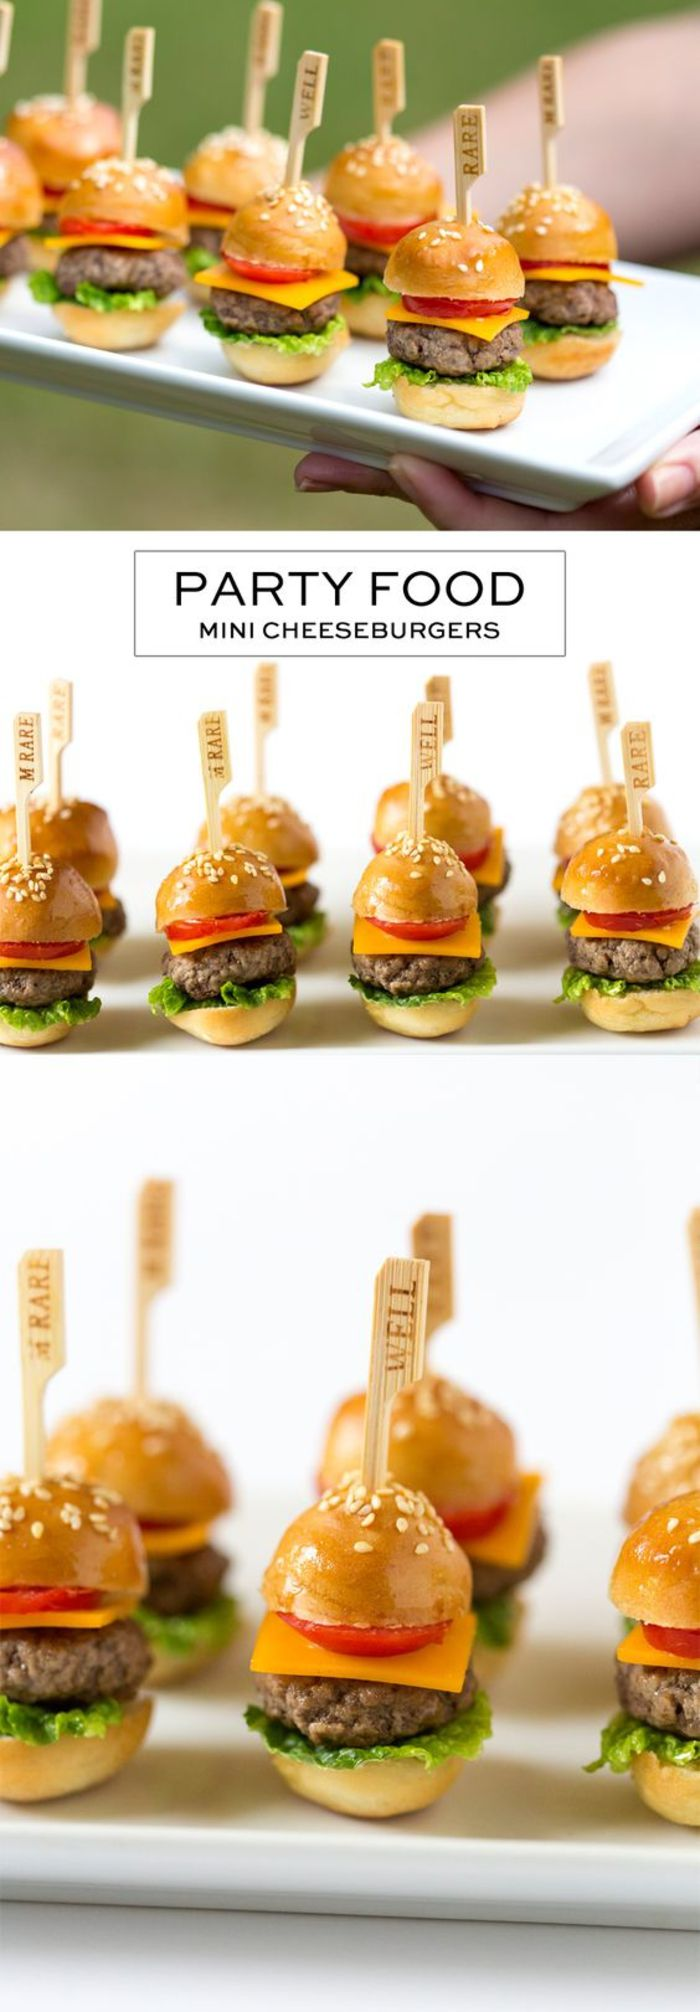 organizzare festa d'addio, mini cheeseburger, morsi di cocktail